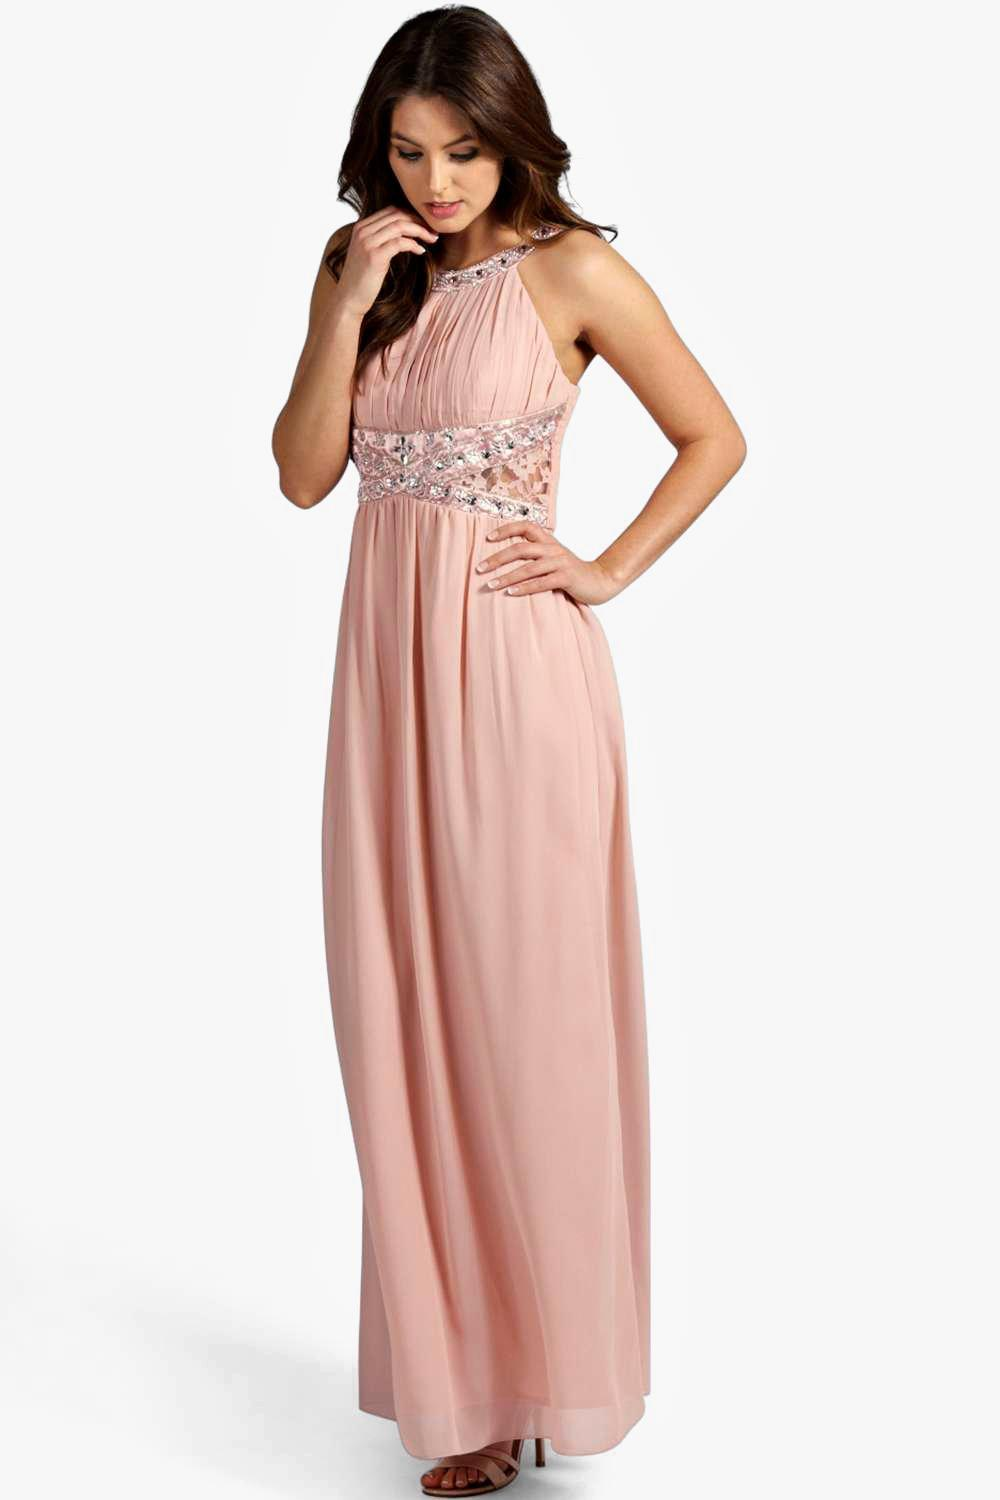 046fc5e68116 Blush Maxi Dresses Uk